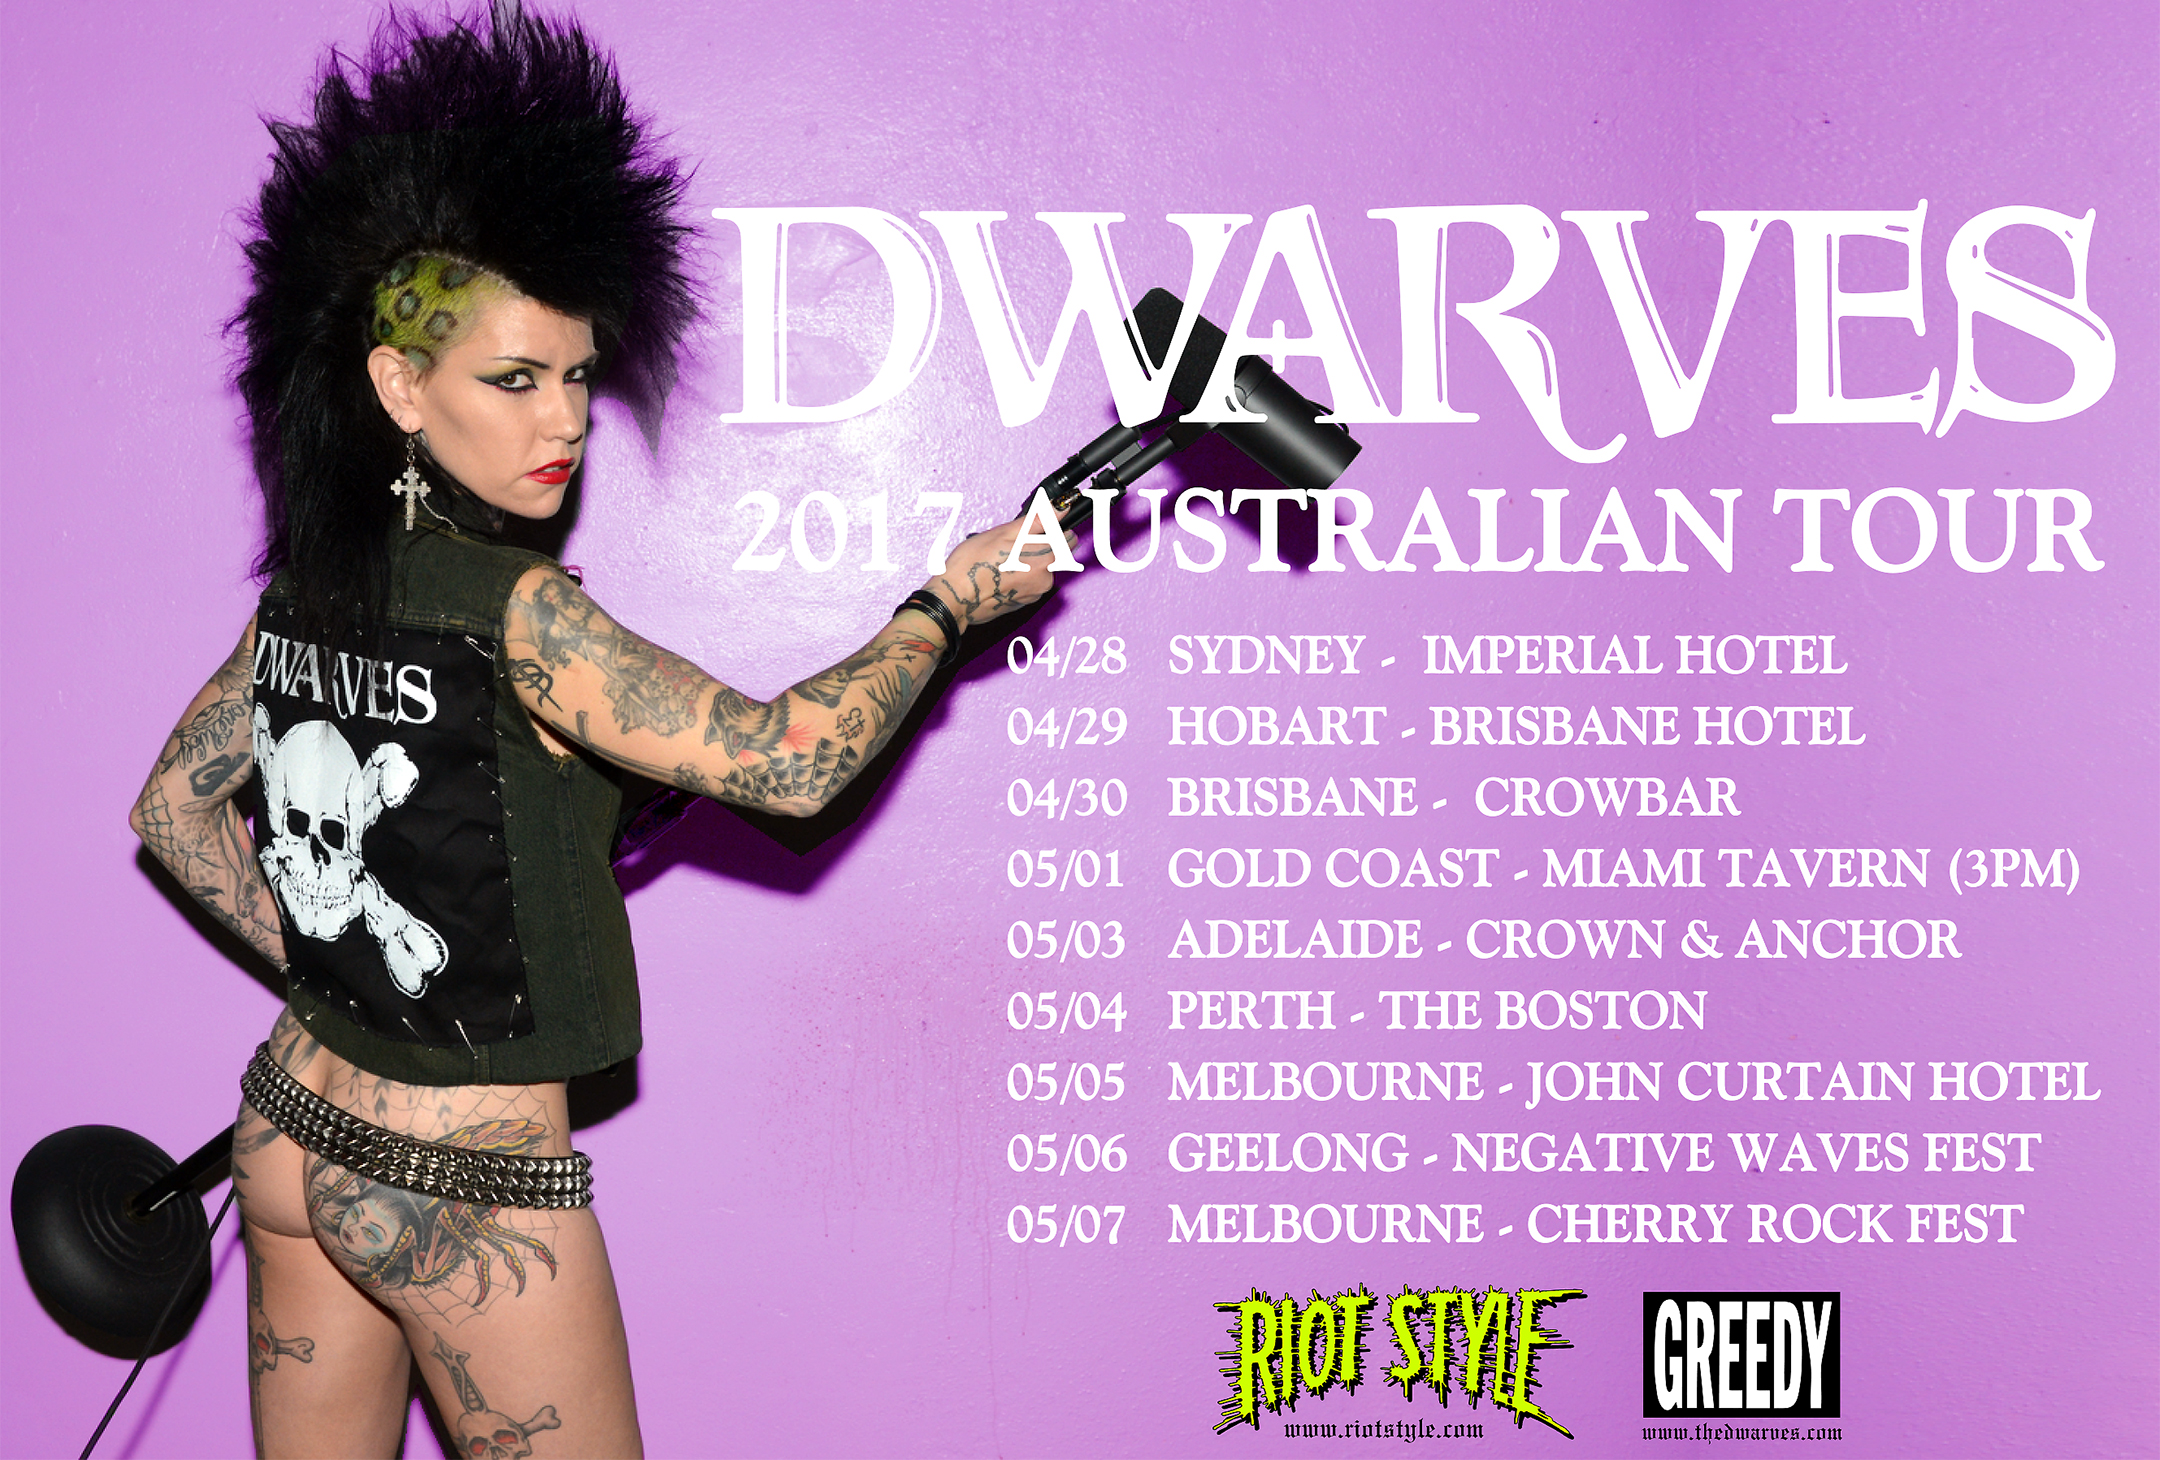 Dwarves Australia Tour Dates 2017